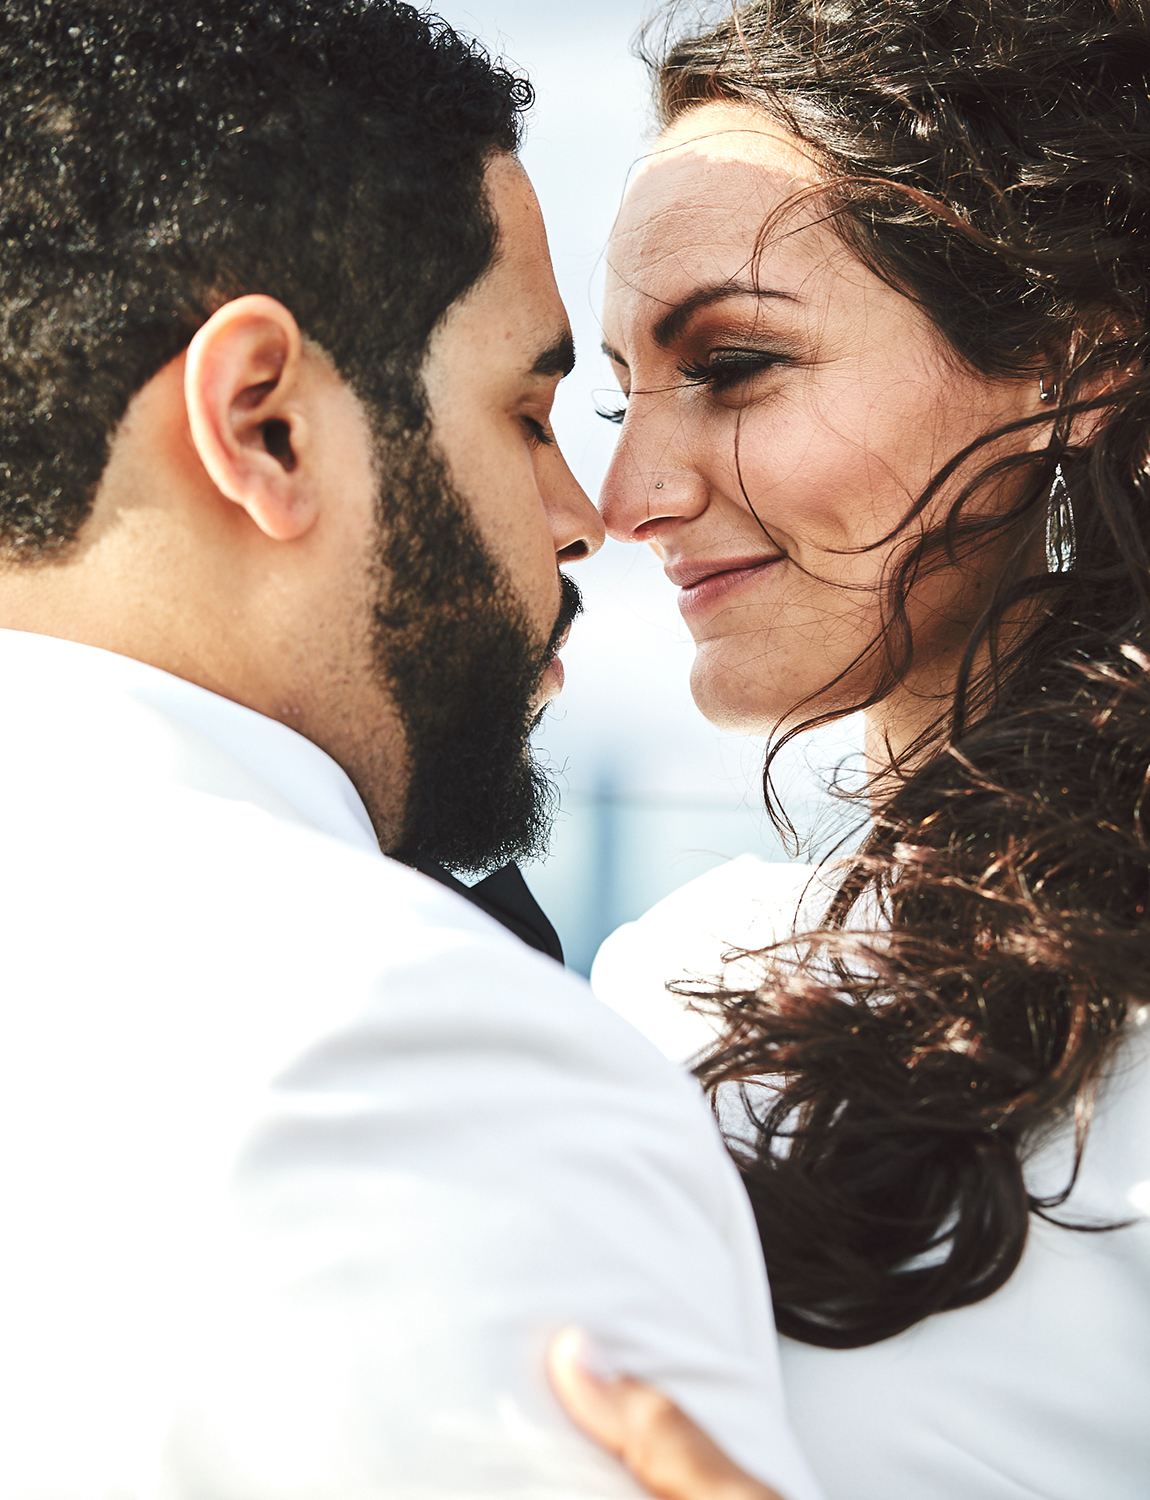 170930_WilliamValeWeddingPhotography_BrooklynWeddingPhotographer_By_BriJohnsonWeddings_0086.jpg